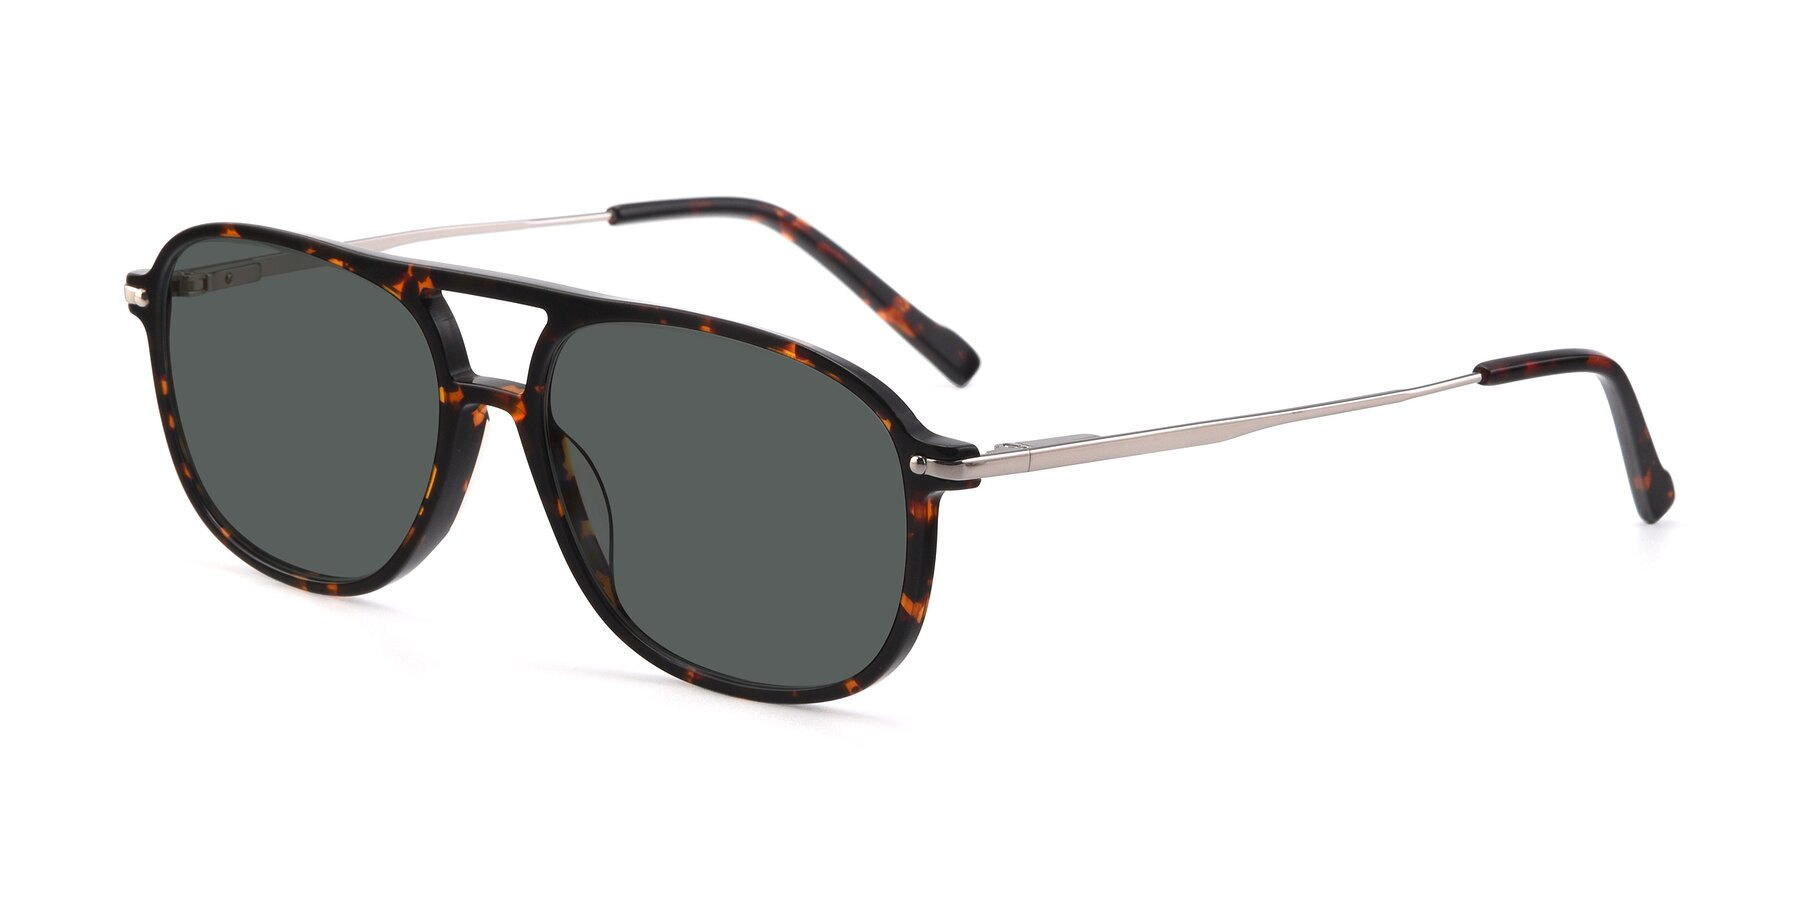 Angle of 17580 in Tortoise with Gray Polarized Lenses